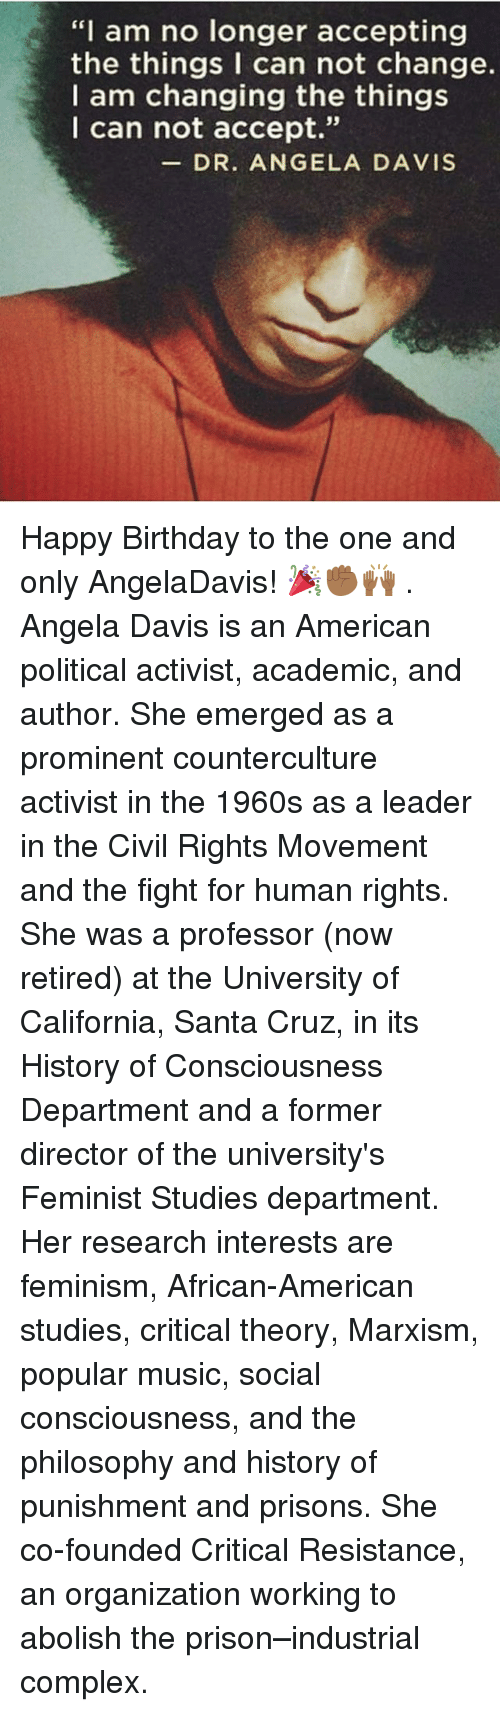 "Birthday, Complex, and Feminism: ""I am no longer accepting  the things I can not change.  I am changing the things  I can not accept  93  DR. ANGELA DAVIS Happy Birthday to the one and only AngelaDavis! 🎉✊🏾🙌🏾 . Angela Davis is an American political activist, academic, and author. She emerged as a prominent counterculture activist in the 1960s as a leader in the Civil Rights Movement and the fight for human rights. She was a professor (now retired) at the University of California, Santa Cruz, in its History of Consciousness Department and a former director of the university's Feminist Studies department. Her research interests are feminism, African-American studies, critical theory, Marxism, popular music, social consciousness, and the philosophy and history of punishment and prisons. She co-founded Critical Resistance, an organization working to abolish the prison–industrial complex."